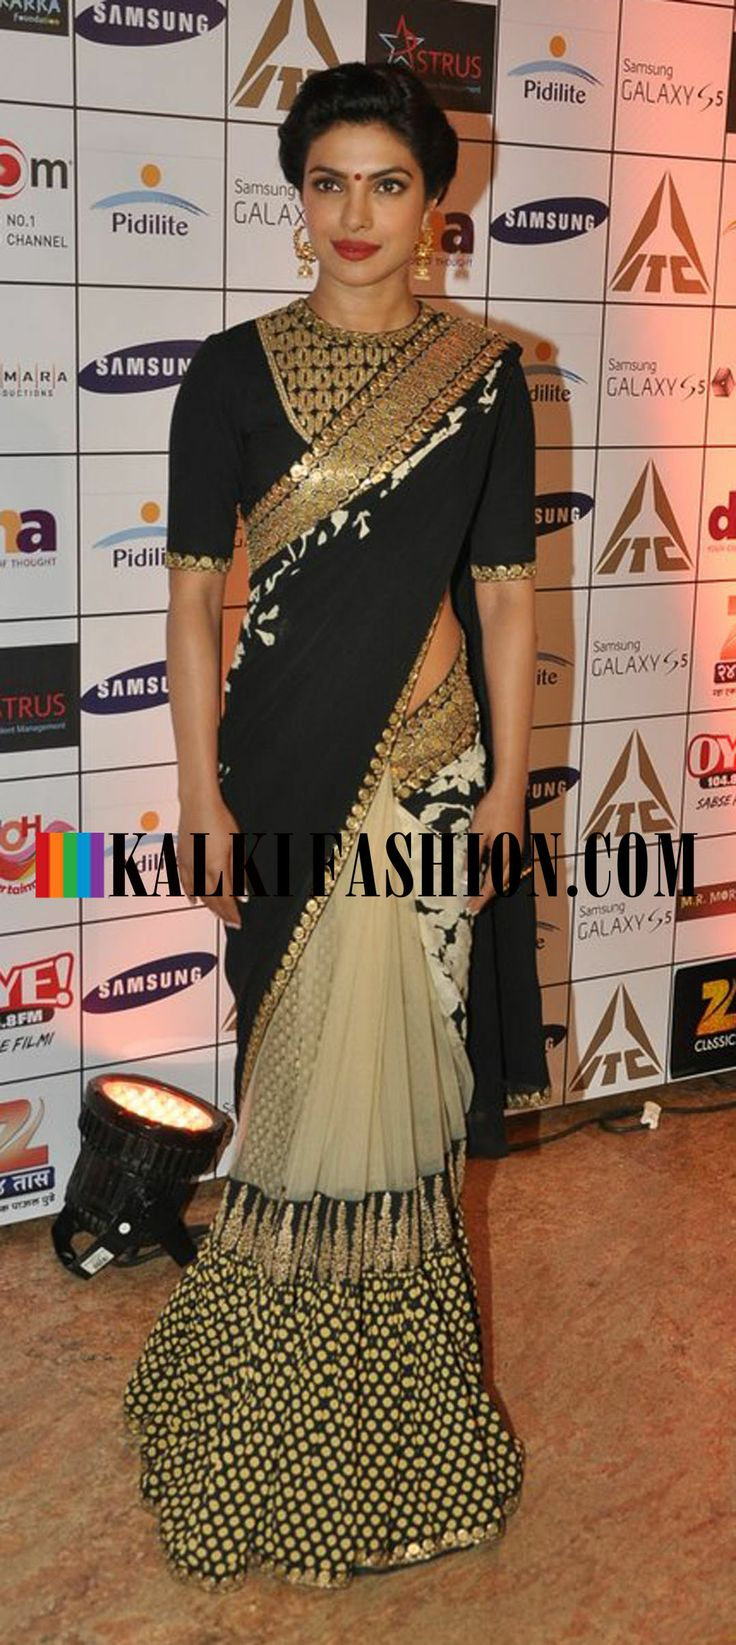 Priyanka Chopra in a half and half black and beige saree by Sabyasachi attends Dilip Kumar's autobiography book launch. http://www.kalkifashion.com/